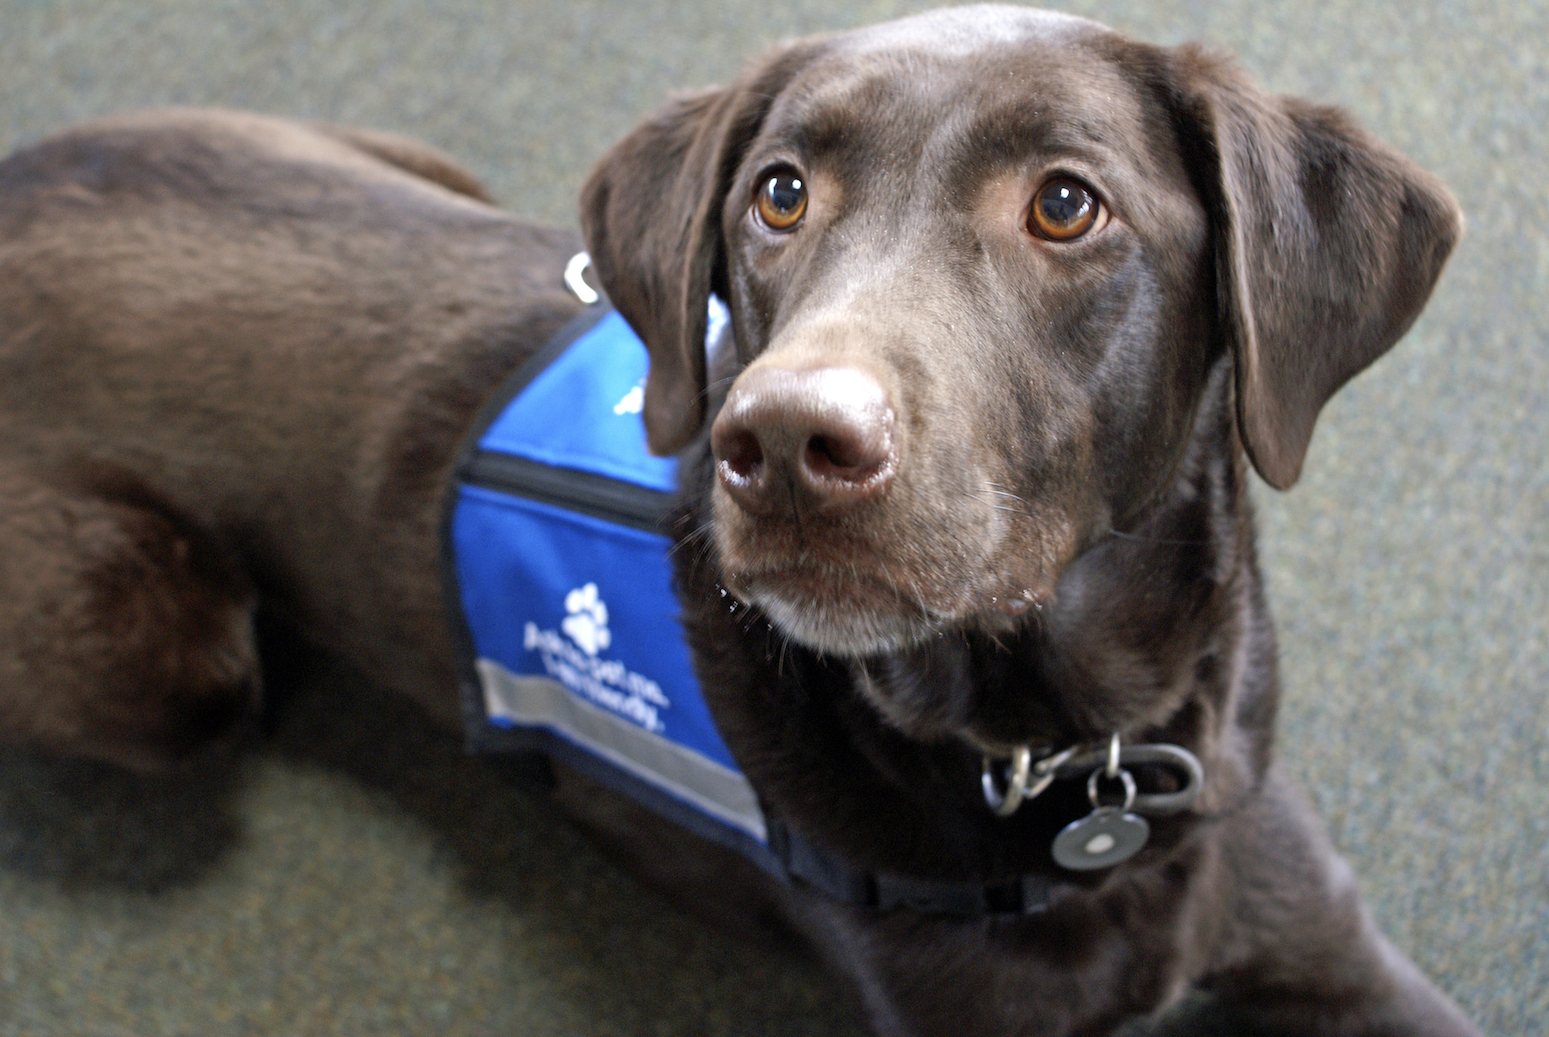 A new study from the Purdue University College of Veterinary Medicine has demonstrated that veterans who are suffering from post-traumatic stress disorder (PTSD) can benefit physiologically from the company of service dogs.